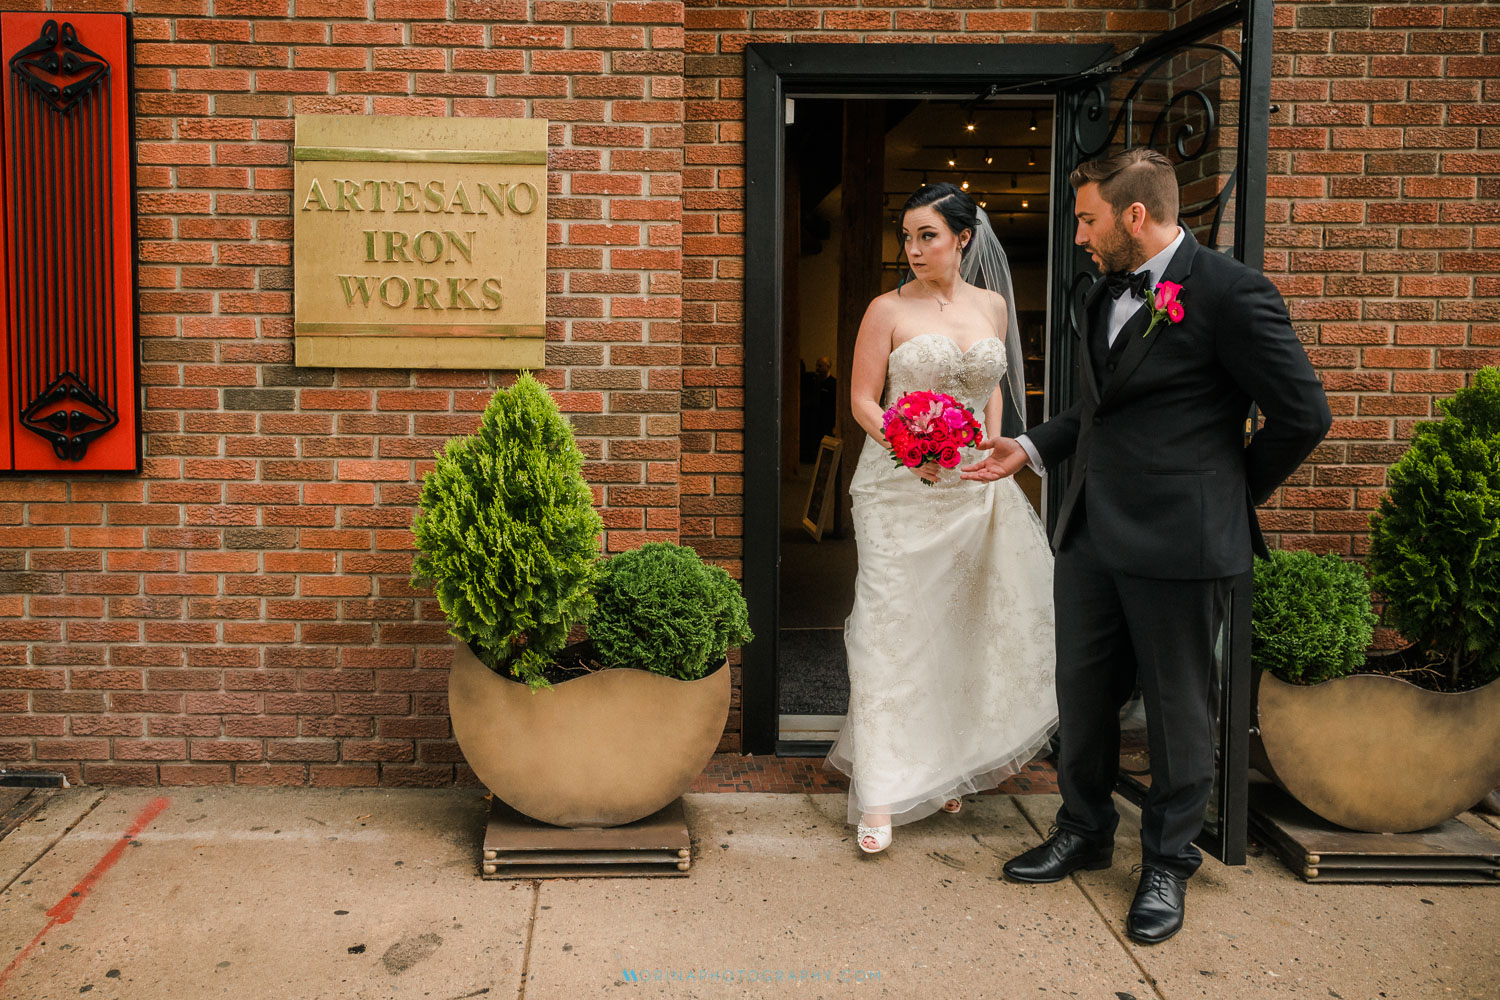 Jill & Rhett Wedding at Artesano Iron Works, Manayunk Philadelphia33.jpg